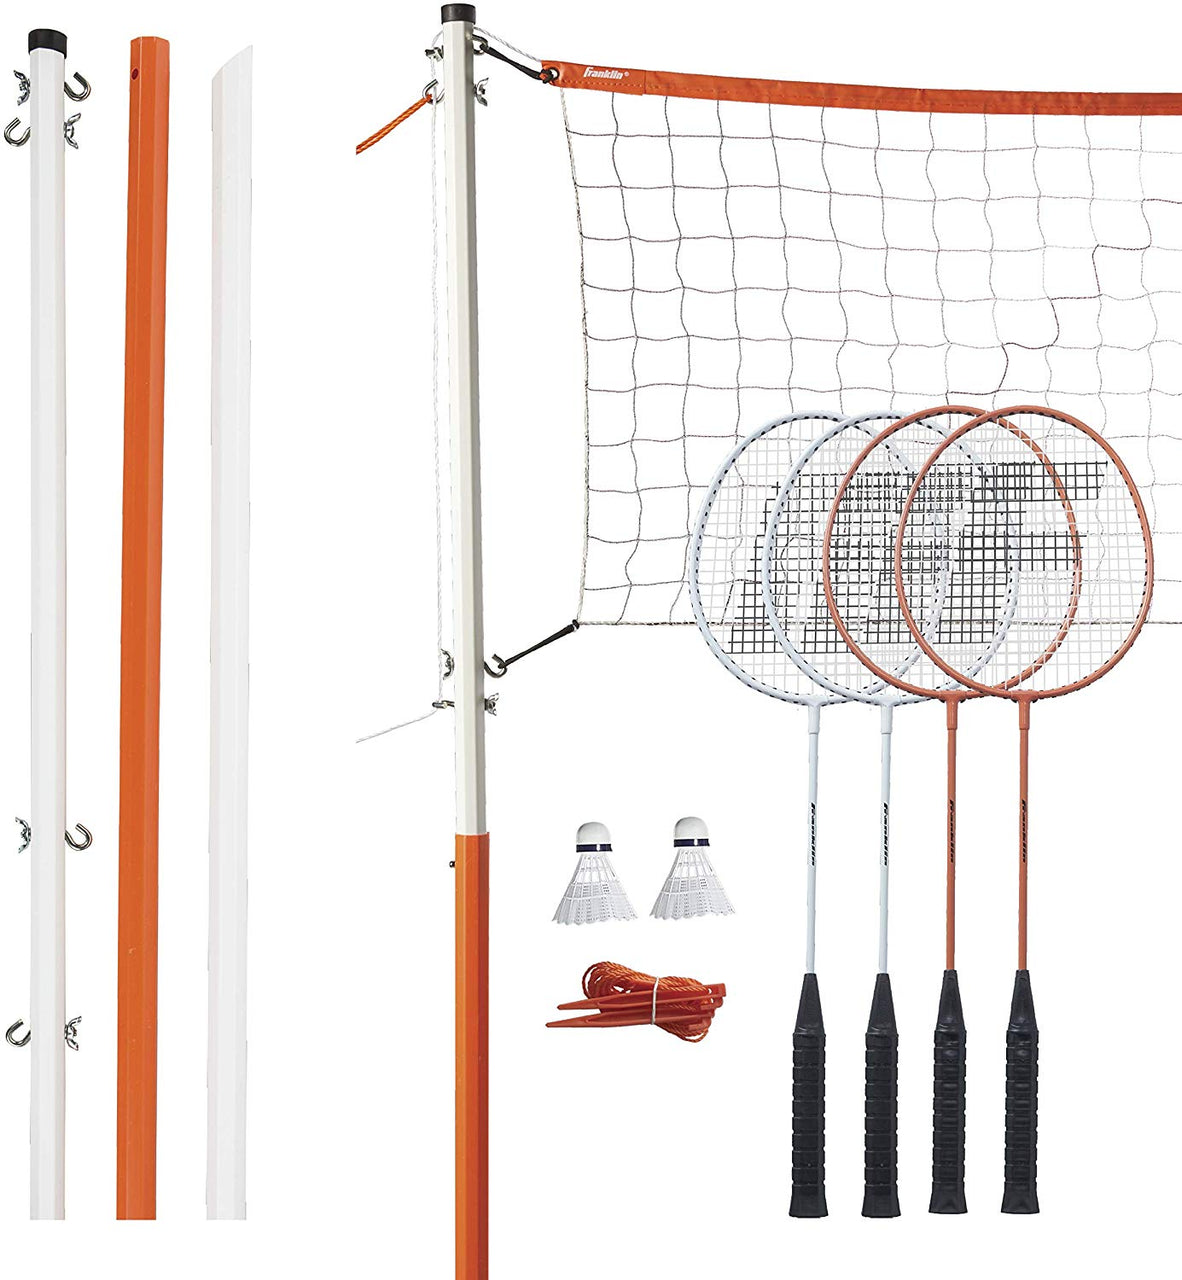 Franklin 52631 Badminton Set